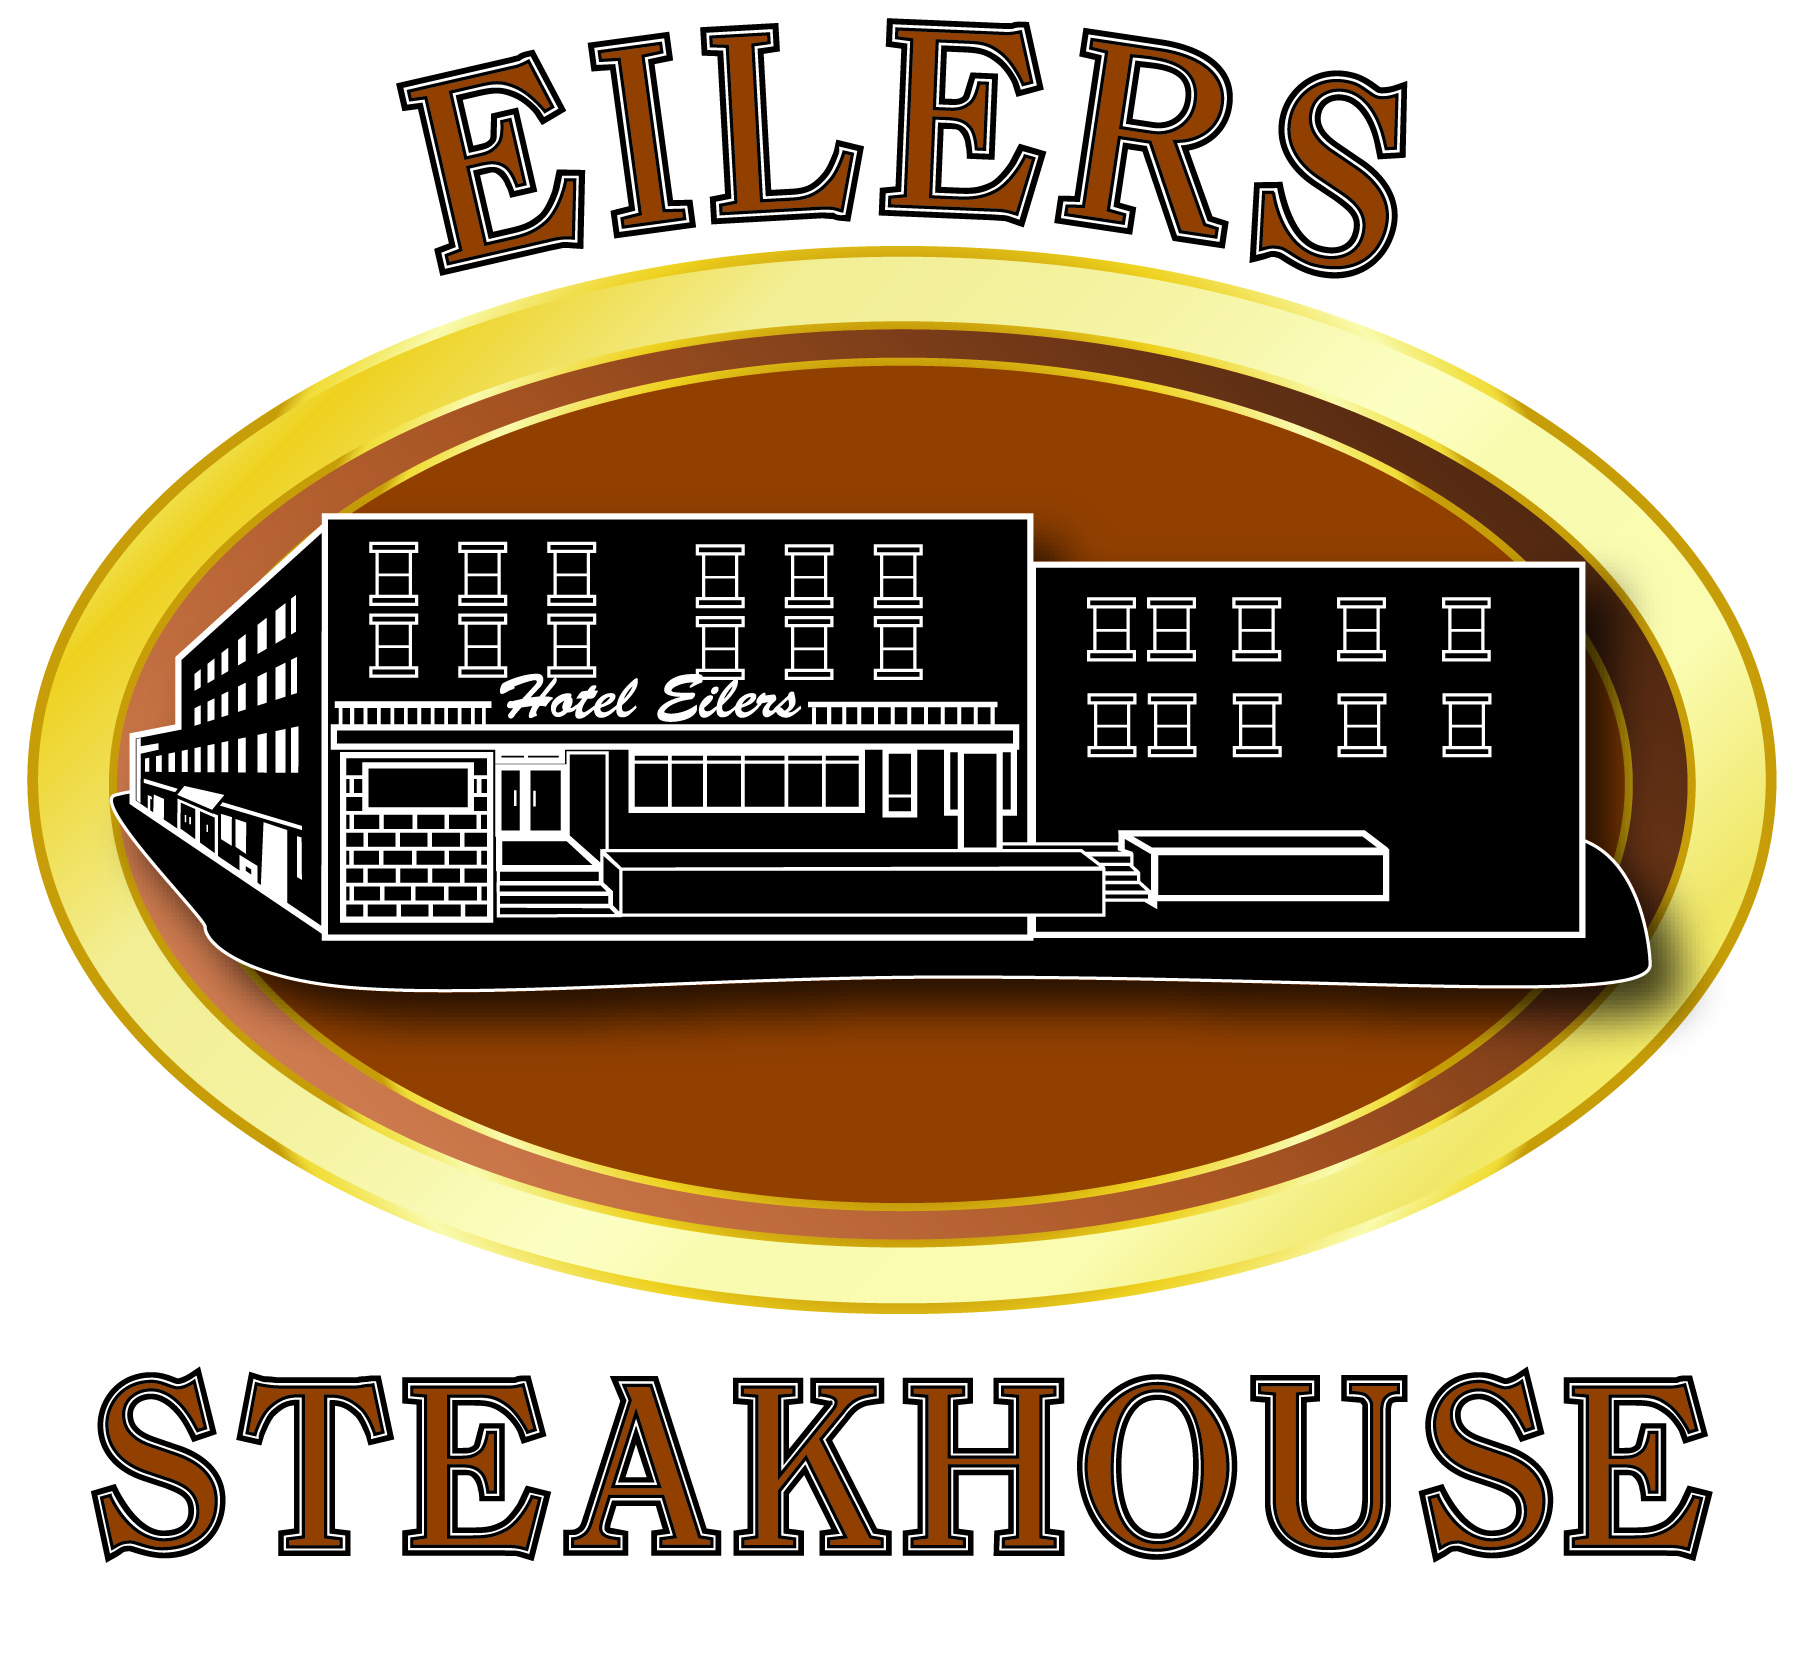 Eilers Steakhouse, Fort Dodge IA